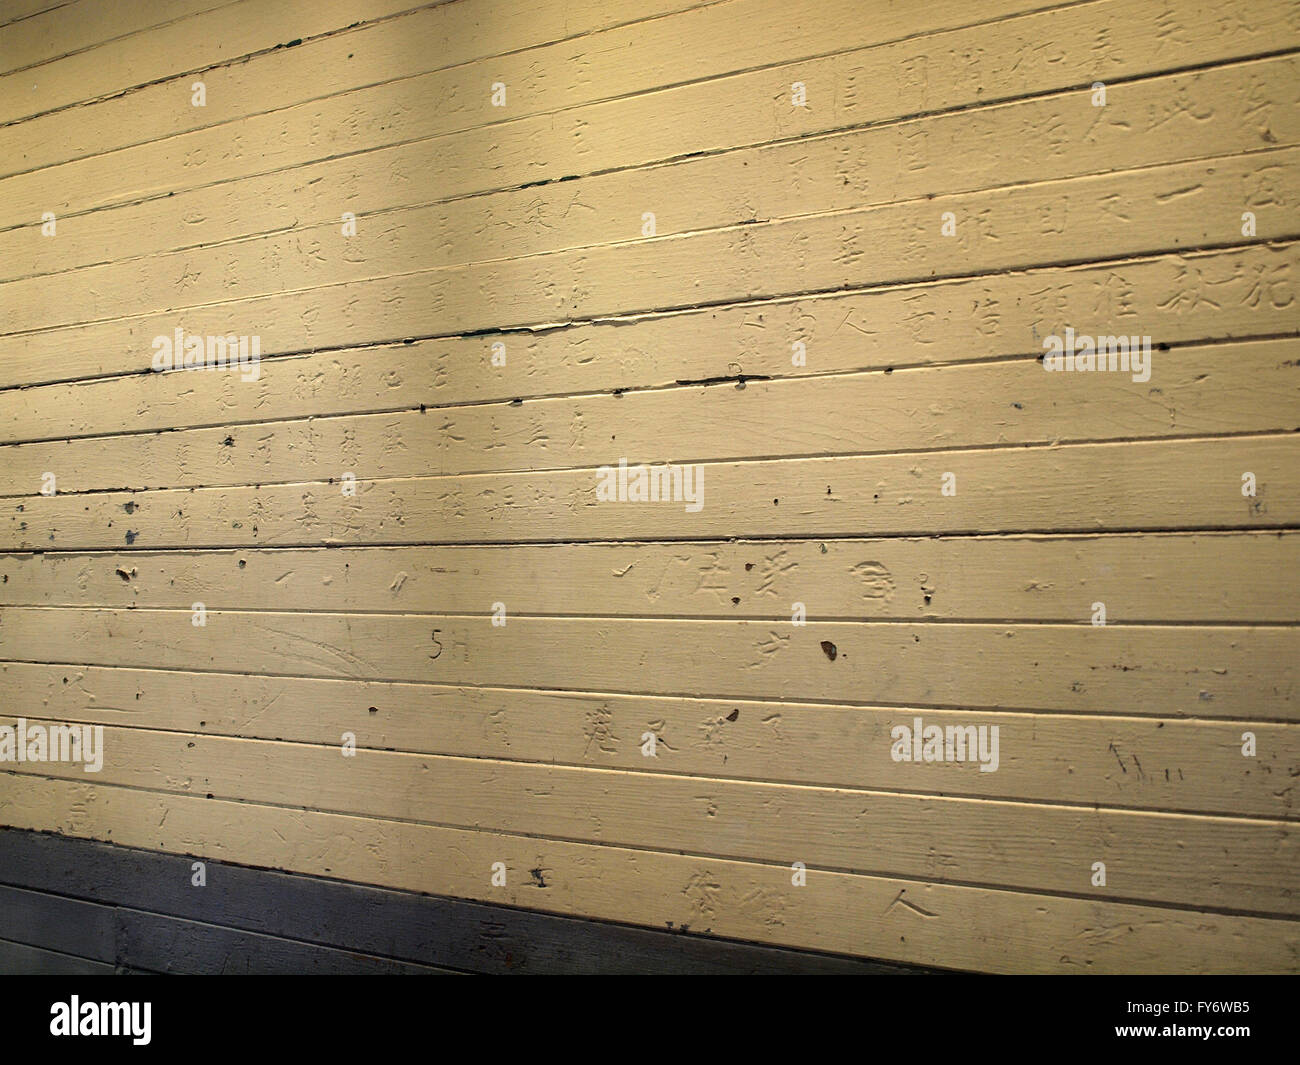 Chinese writting written on the wall on by Chinese immigrants who were detained and interrogated at Angel Island - Stock Image